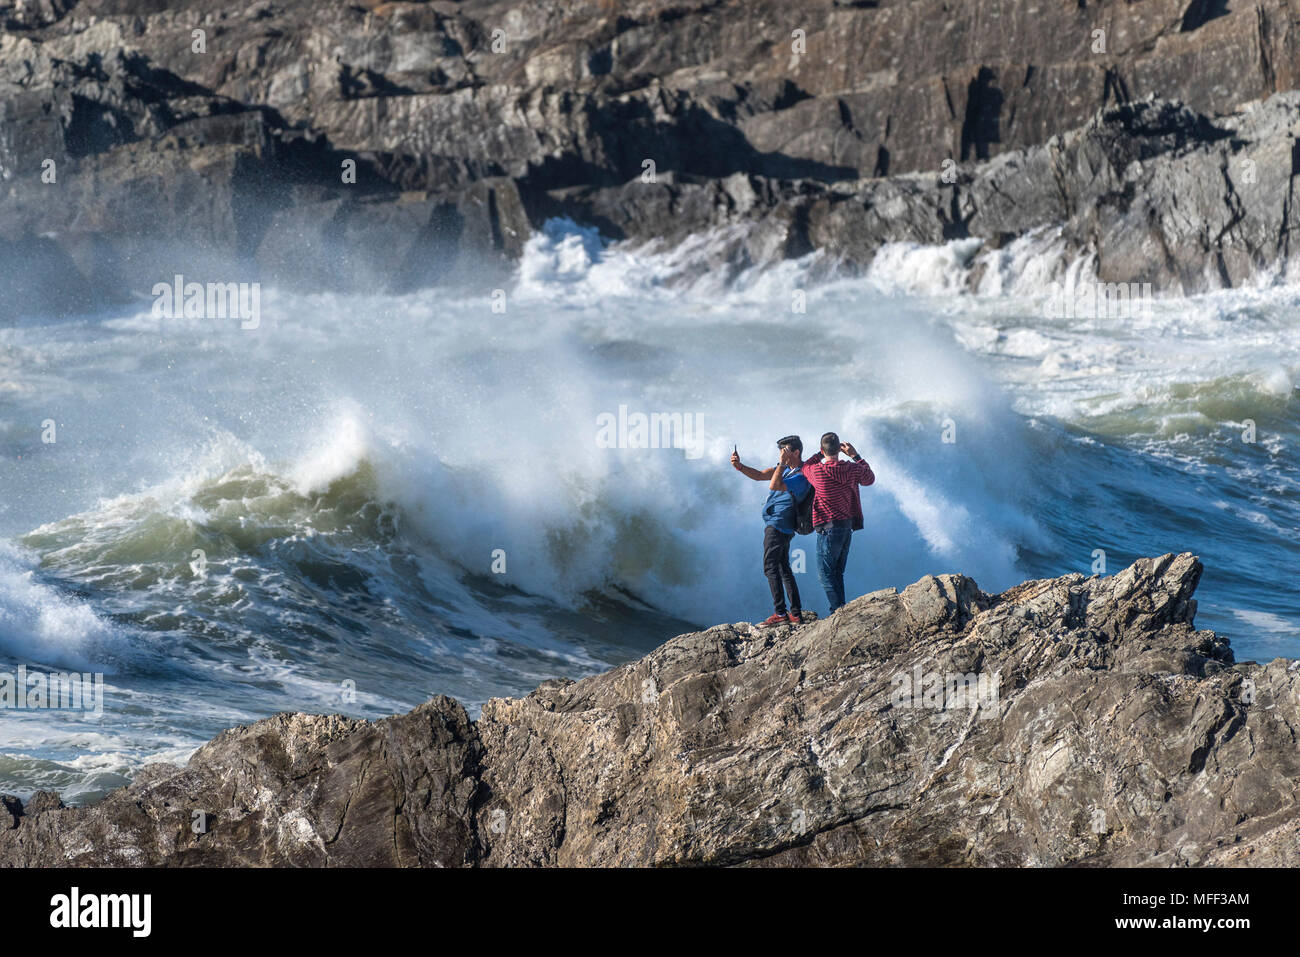 Tourists standing on rocks taking photographs as large powerful waves break on the shore at Little Fistral in Newquay Cornwall. - Stock Image